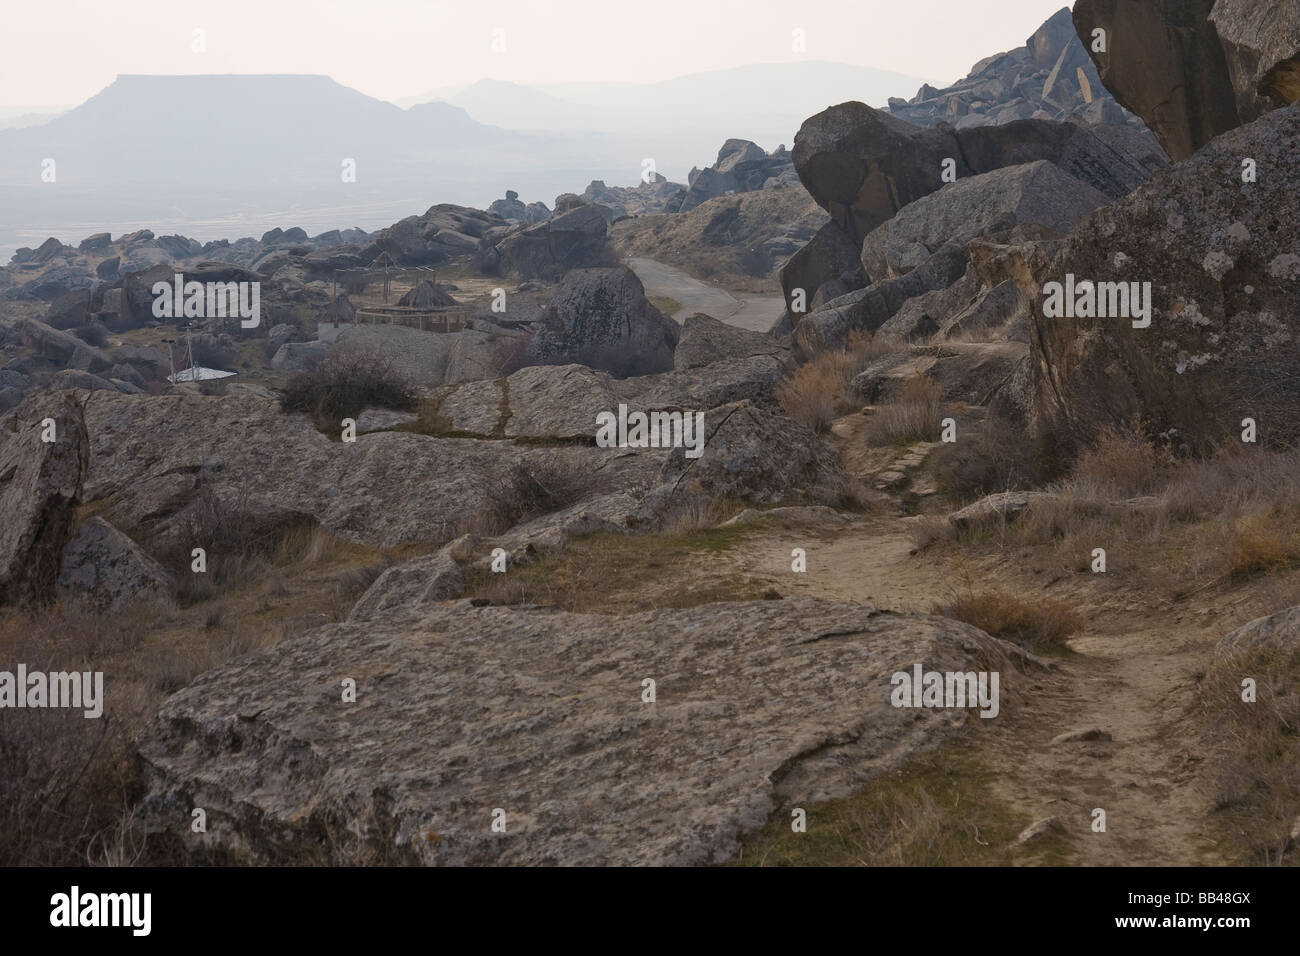 Barren landscape south of Qobustan Azerbaijan. - Stock Image